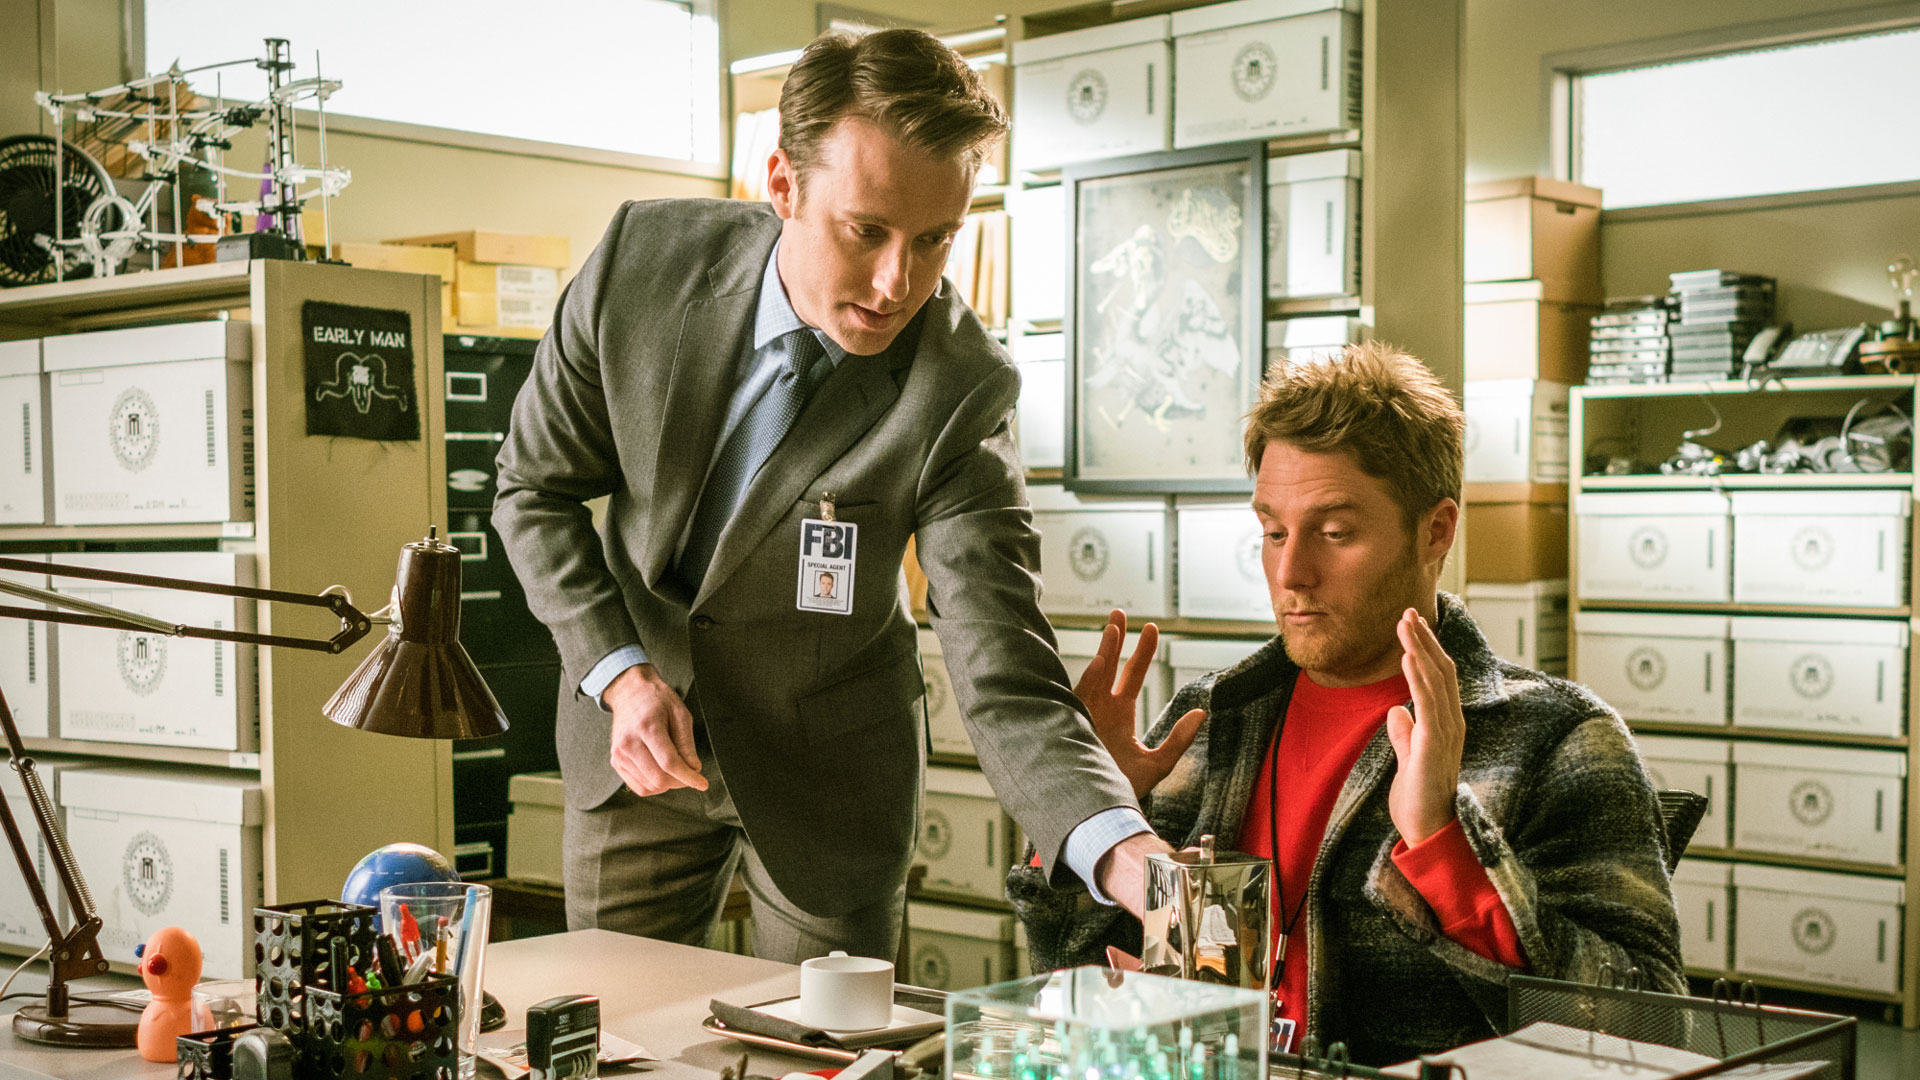 Stephen O'Reilly as Spike Four and Jake McDorman as Brian Finch